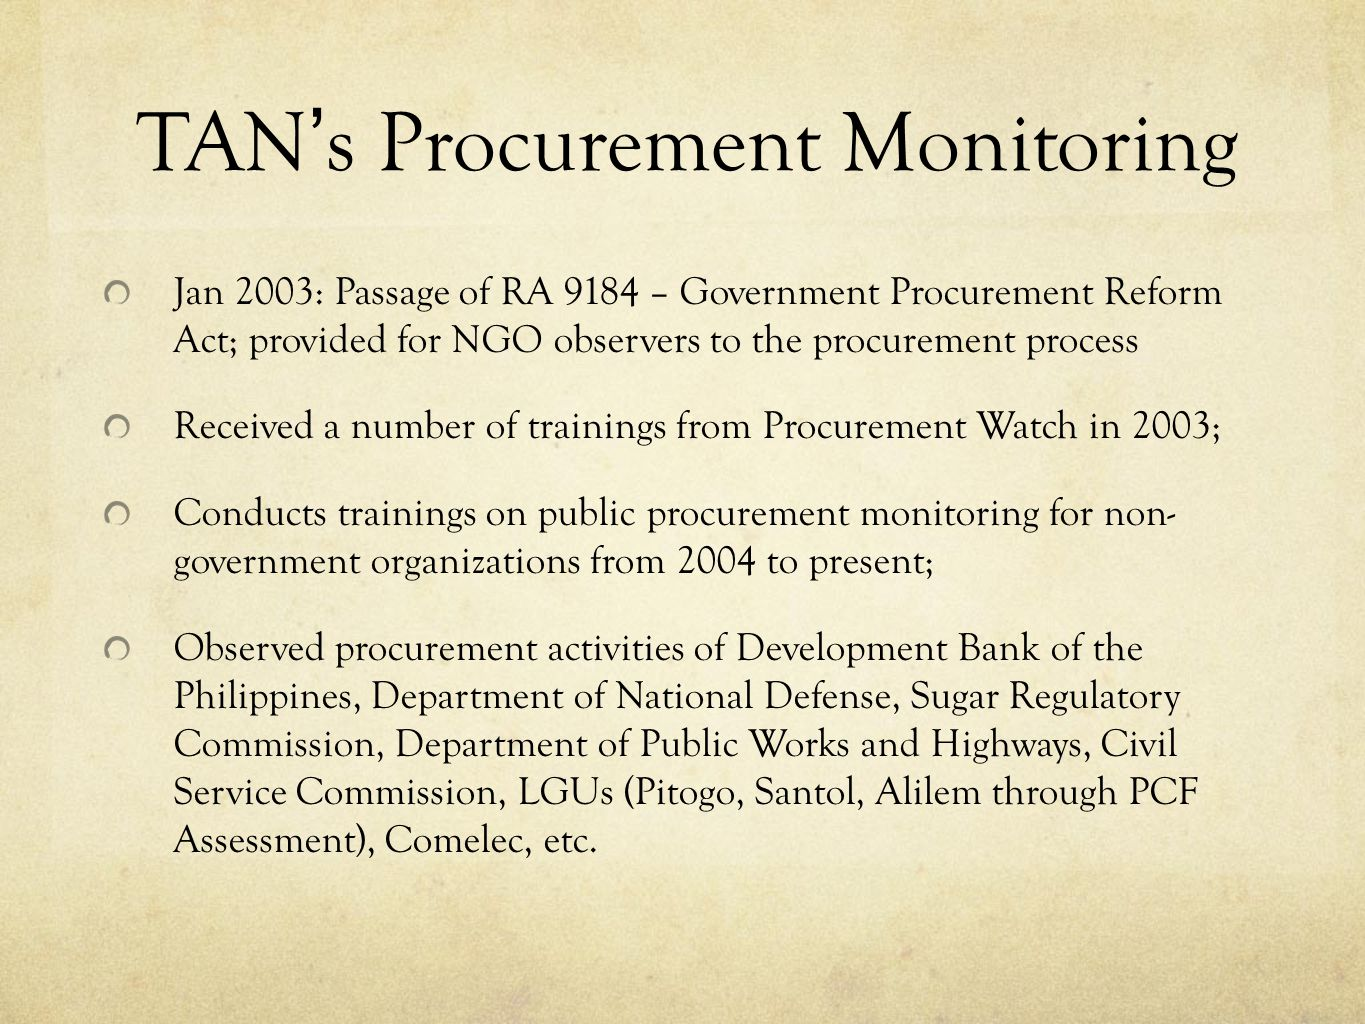 TANs Procurement Monitoring Jan 2003: Passage of RA 9184 – Government Procurement Reform Act; provided for NGO observers to the procurement process Re